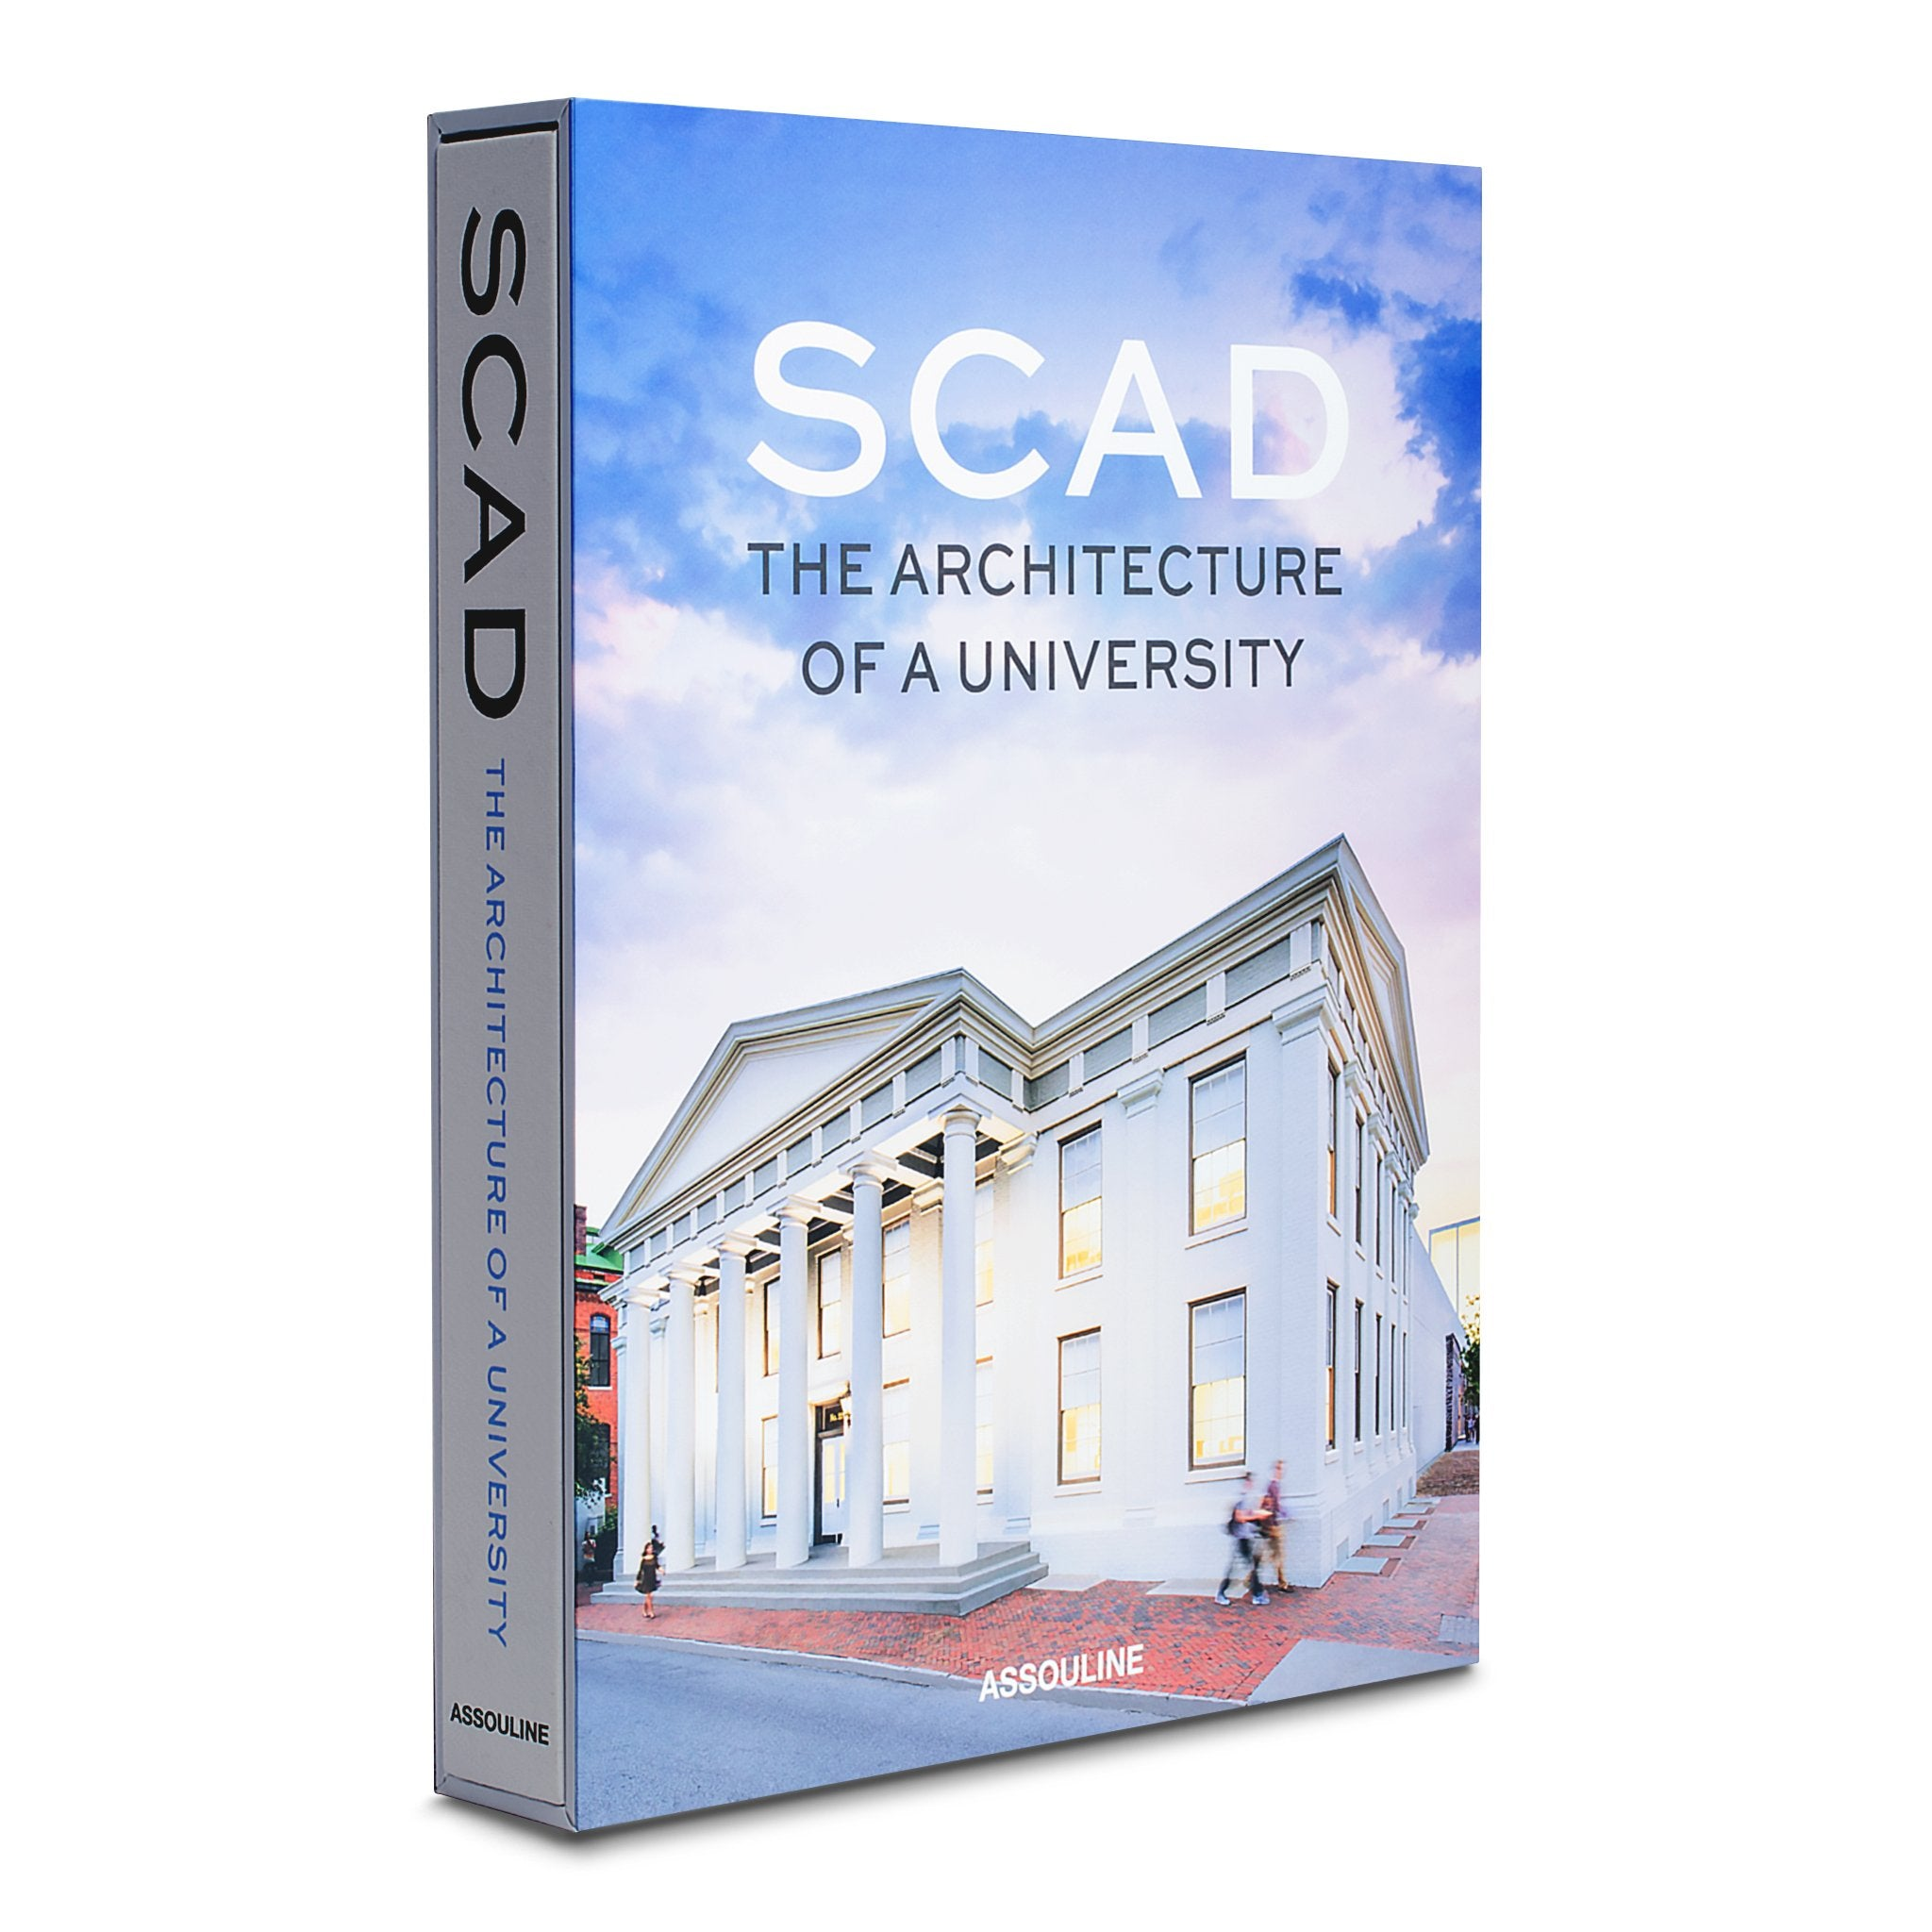 SCAD, Architecture of a University - Assouline